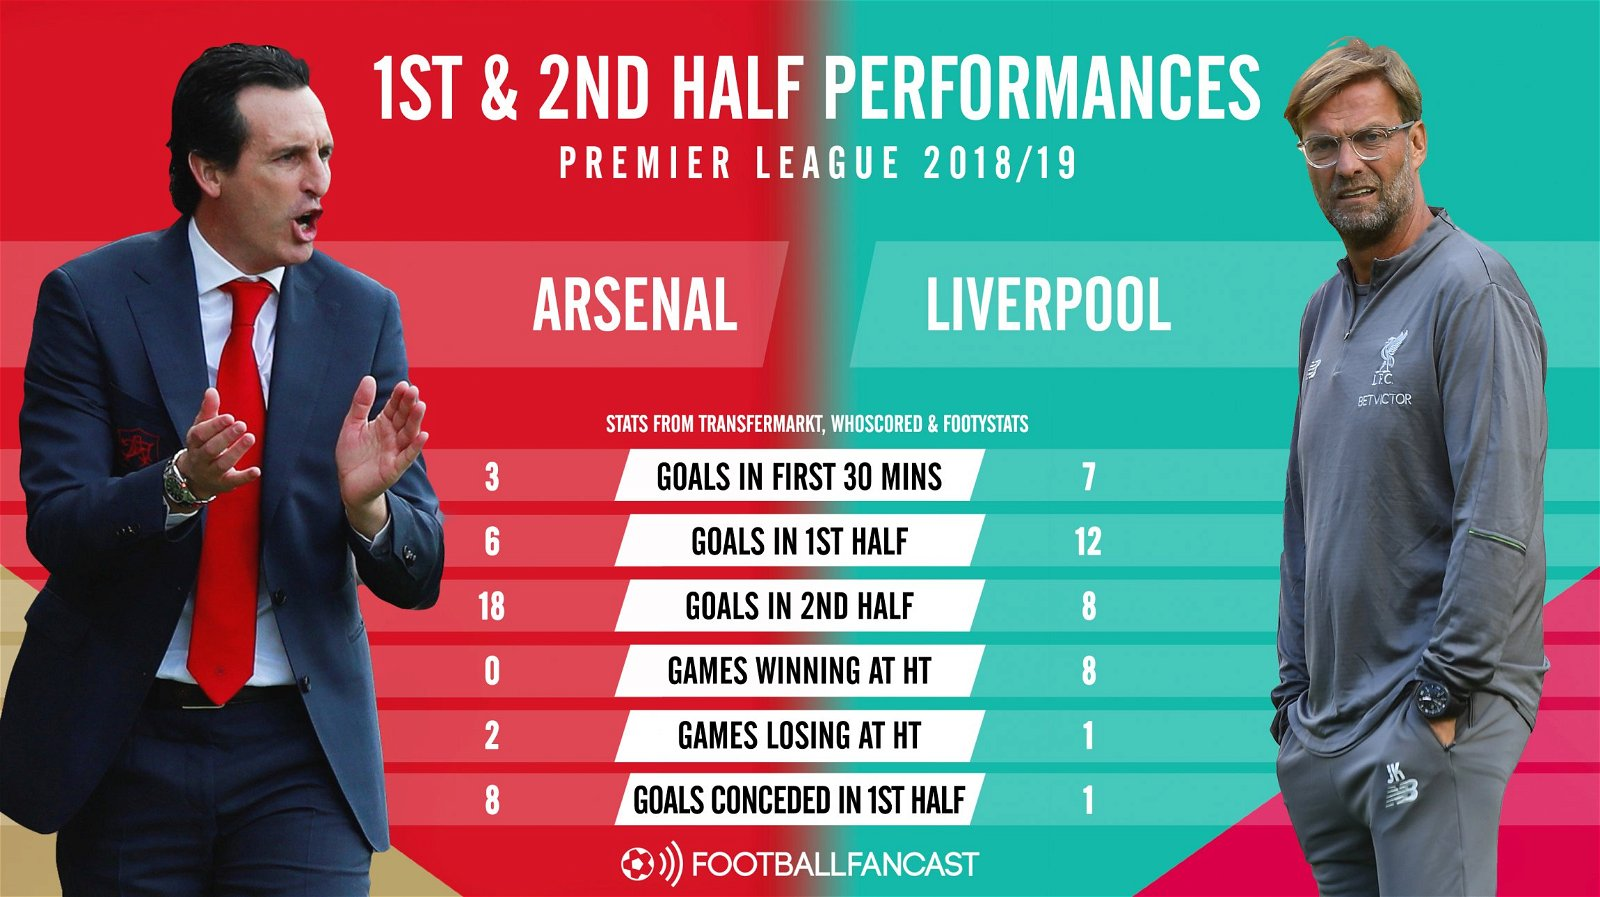 Arsenal vs Liverpool - first and second half performances